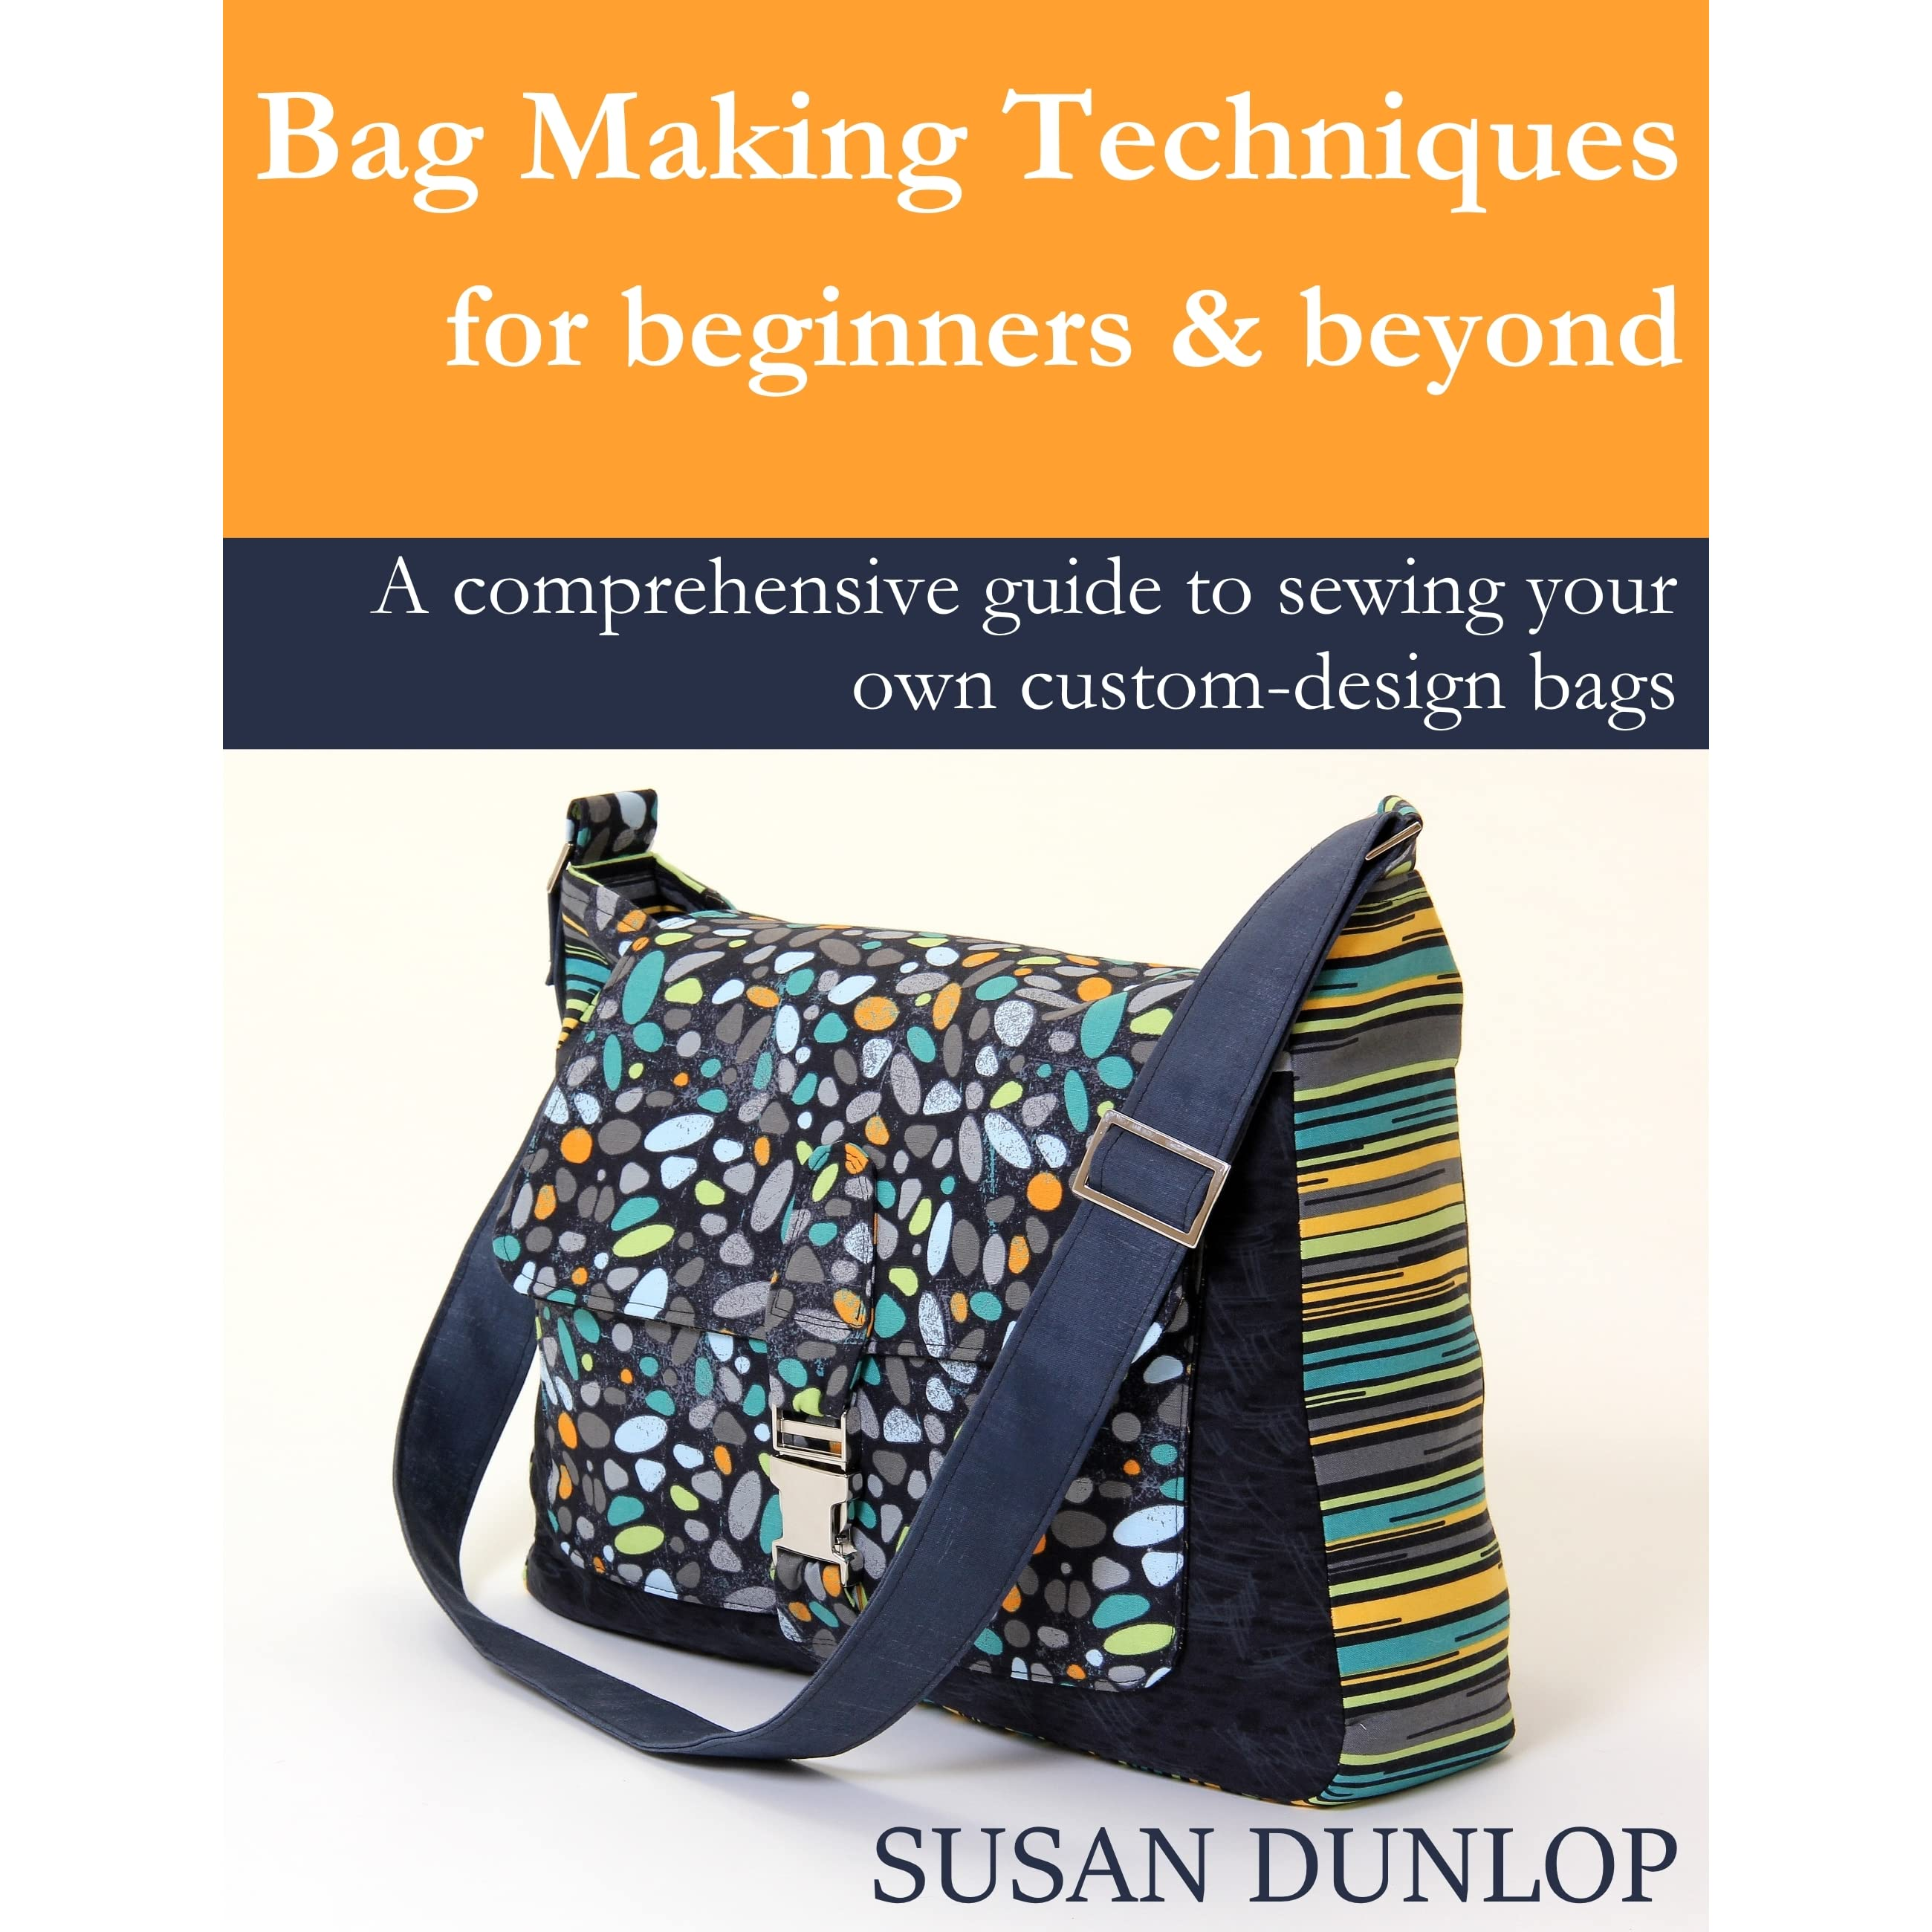 Bag Making Techniques for Beginners and Beyond by Susan Dunlop